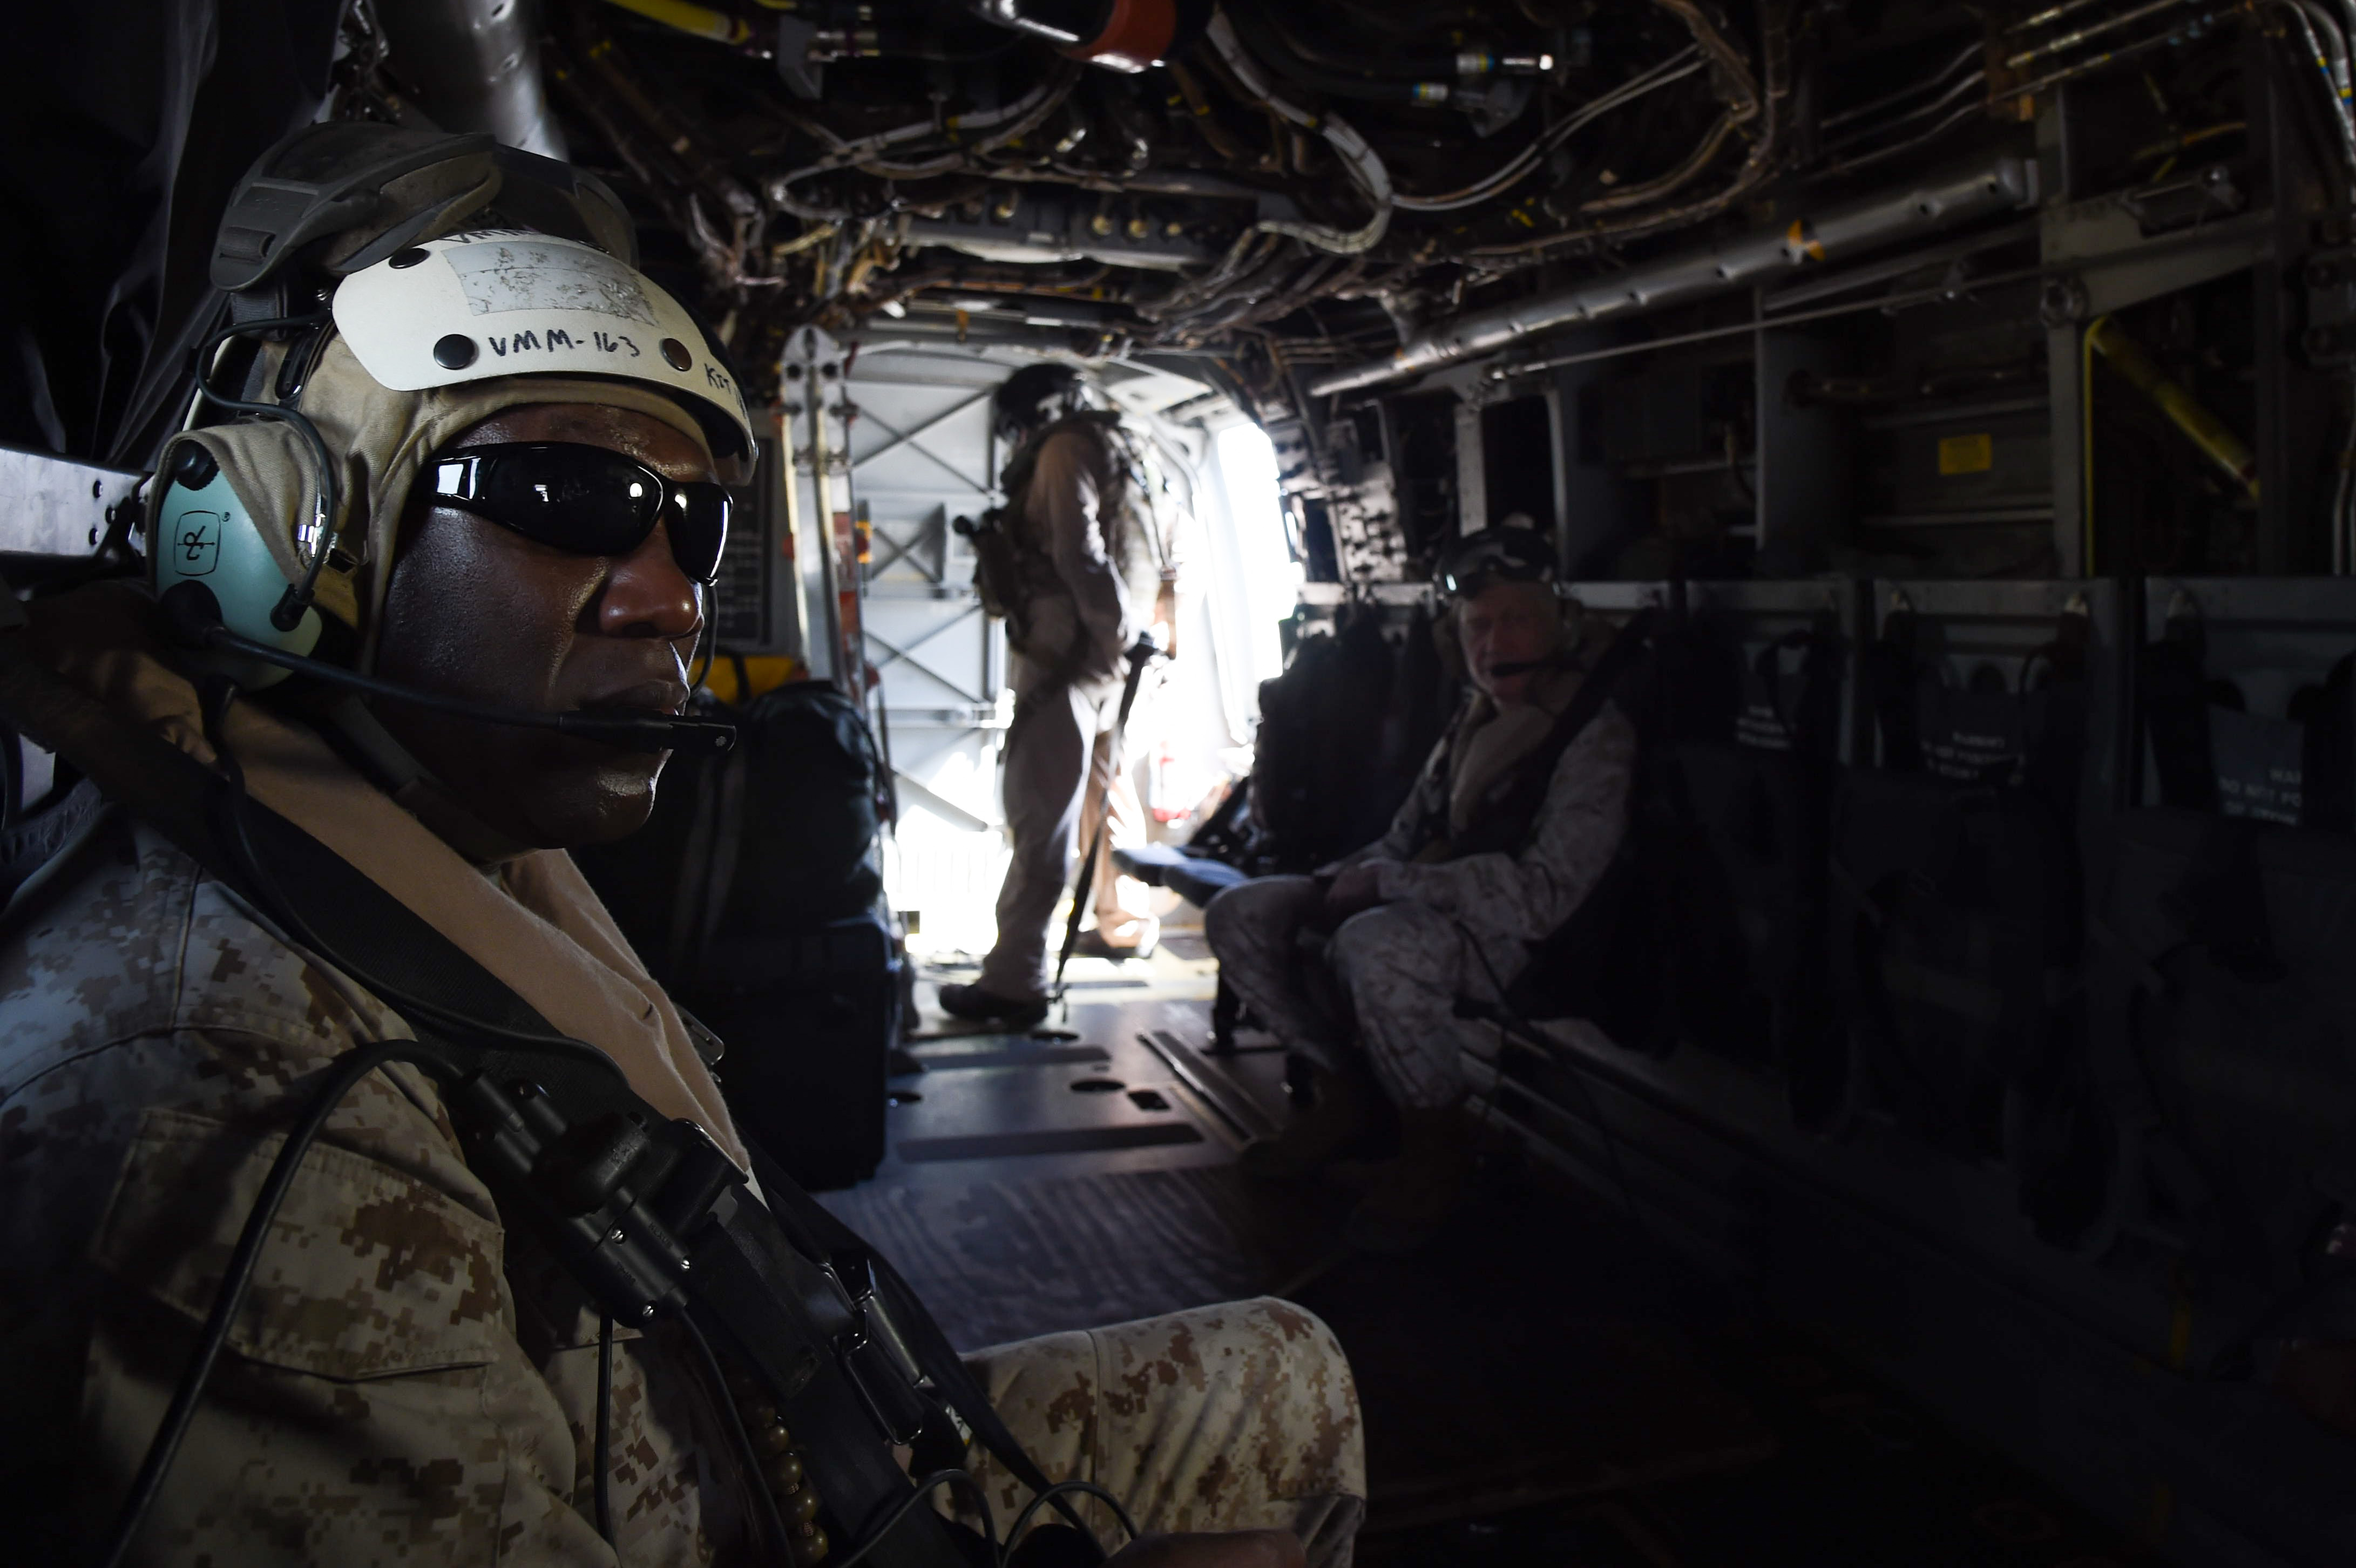 Sgt. Maj. Ronald Green, Sergeant Major of the Marine Corps, prepares for a flight in an MV-22 Osprey departing Camp Lemonnier, Djibouti, Dec. 23, 2016. The Commandant and Sergeant Major of the Marine Corps traveled from camp to the USS Makin Island (LHD 8) to speak with Marines and Sailors stationed overseas and forward deployed. (U.S. Air National Guard photo by Staff Sgt. Penny Snoozy)